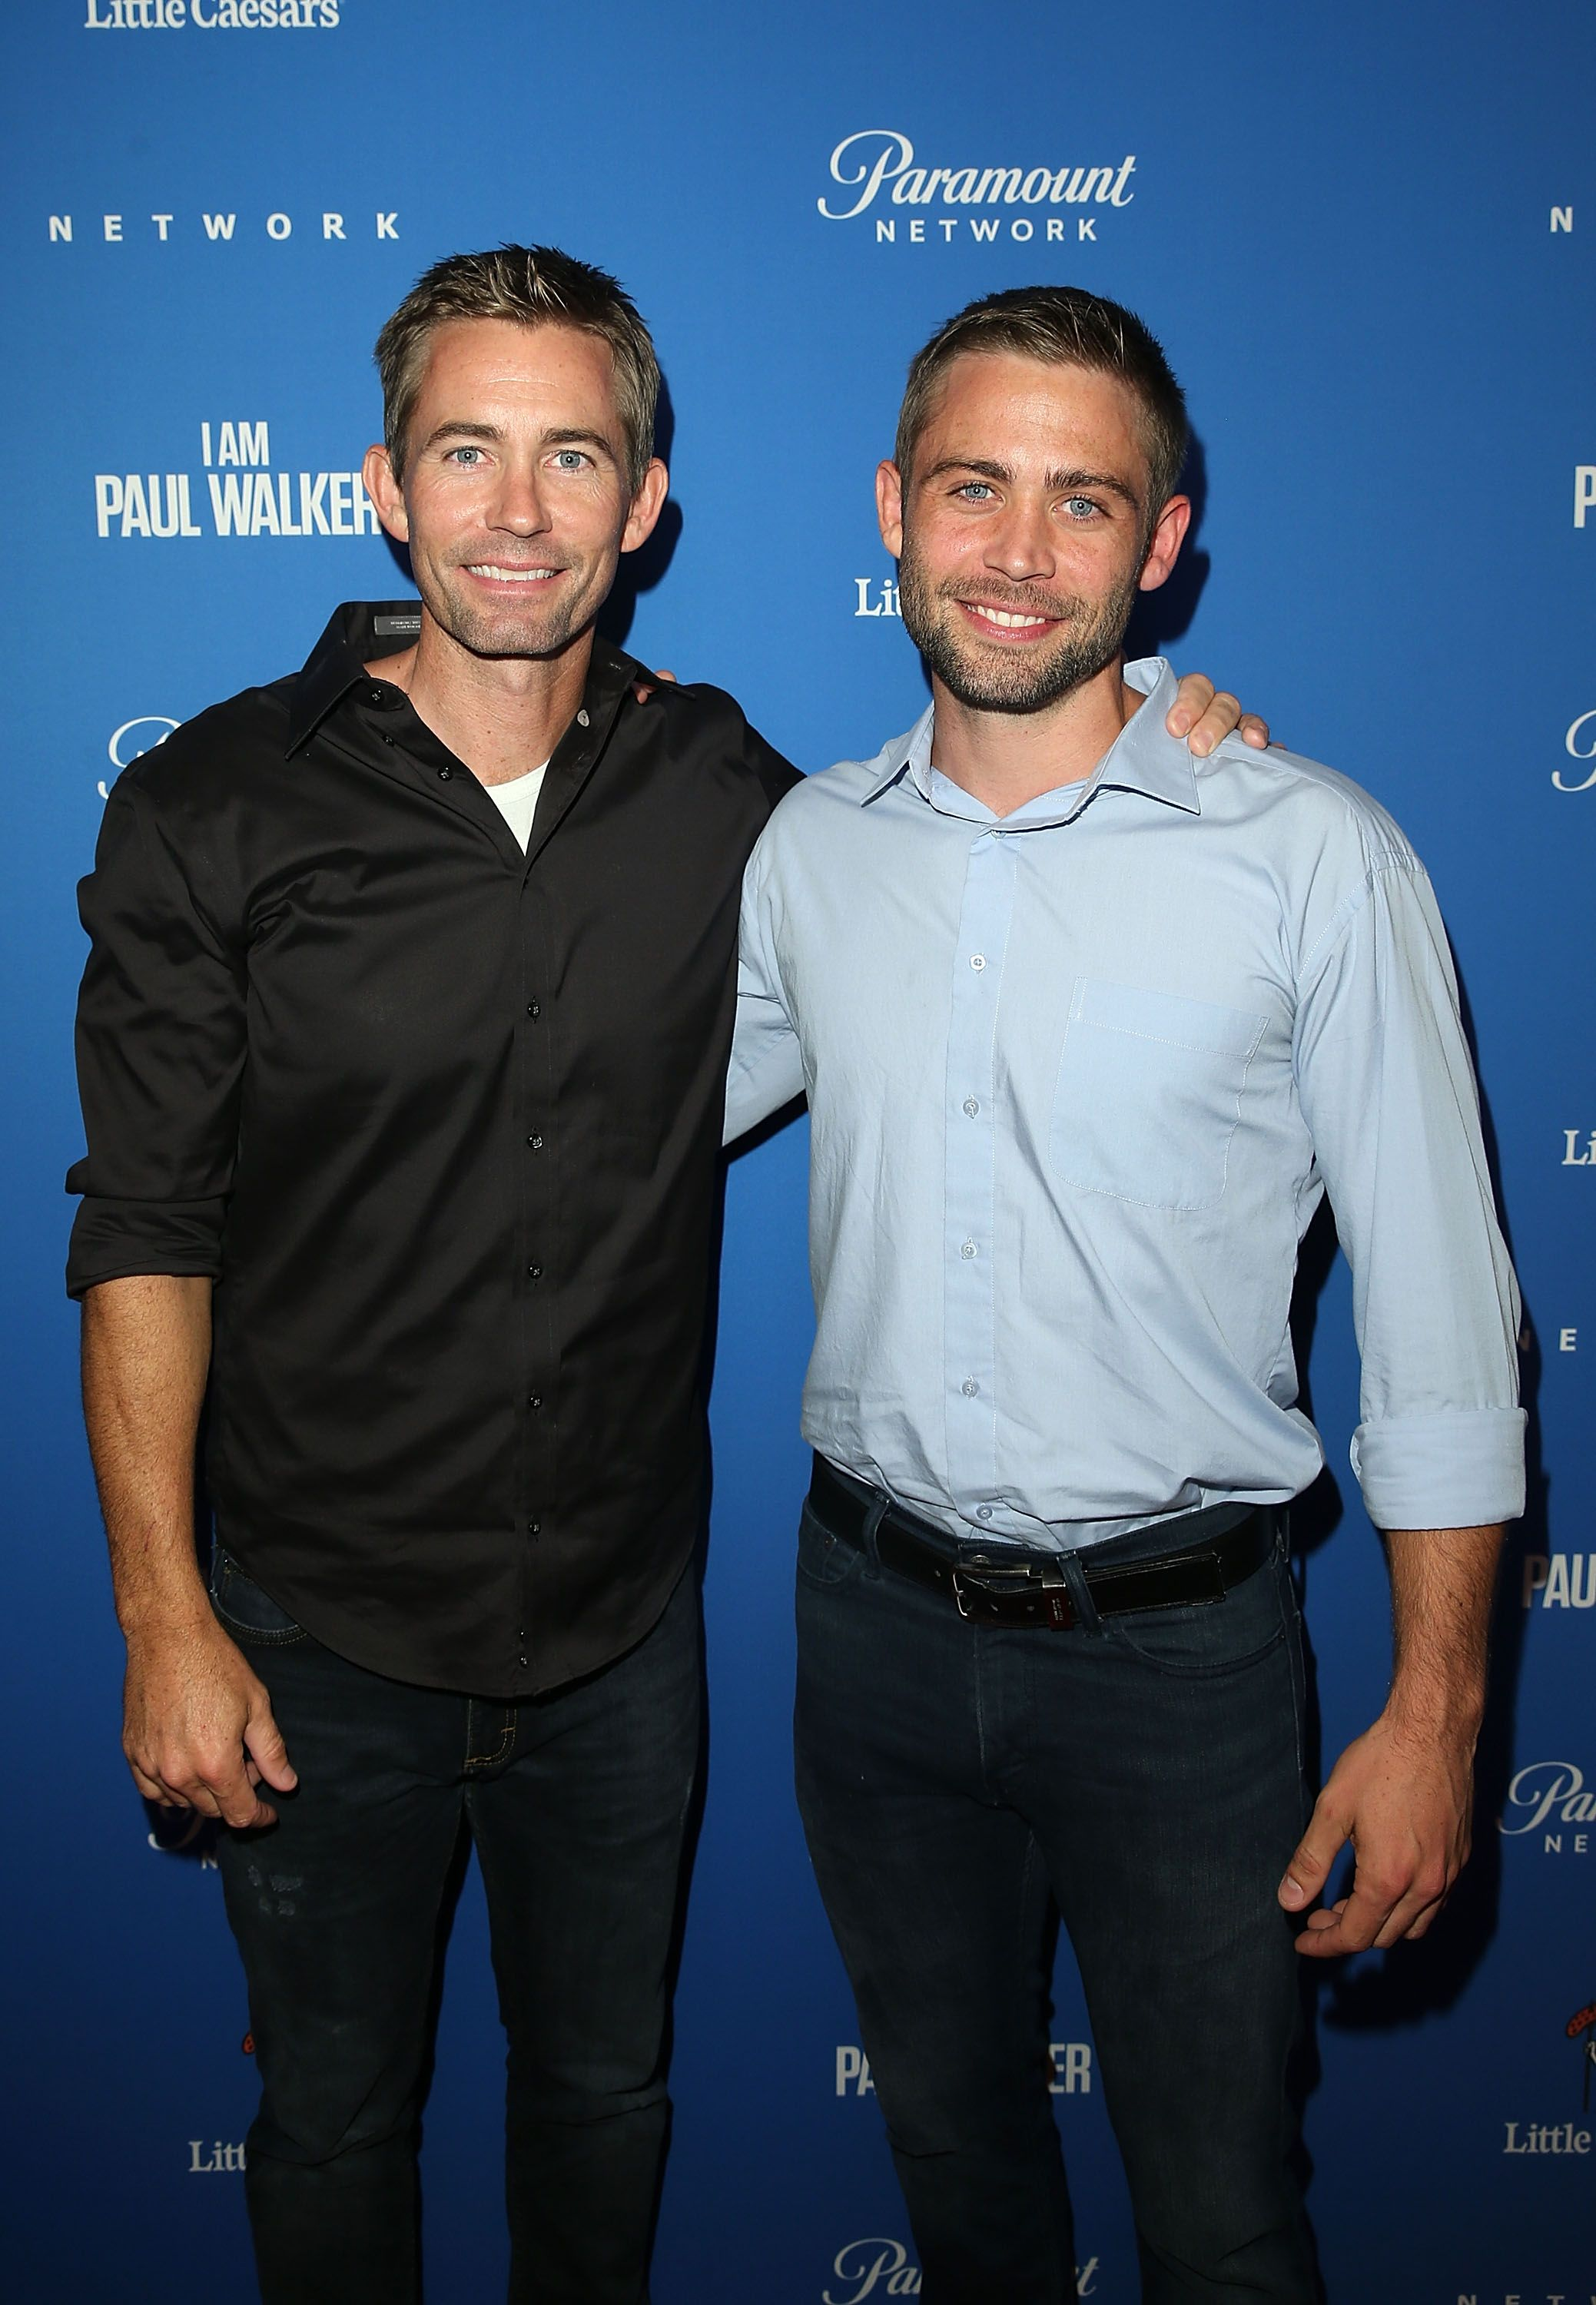 Paul Walker and his brother Caleb Walker / Getty Images